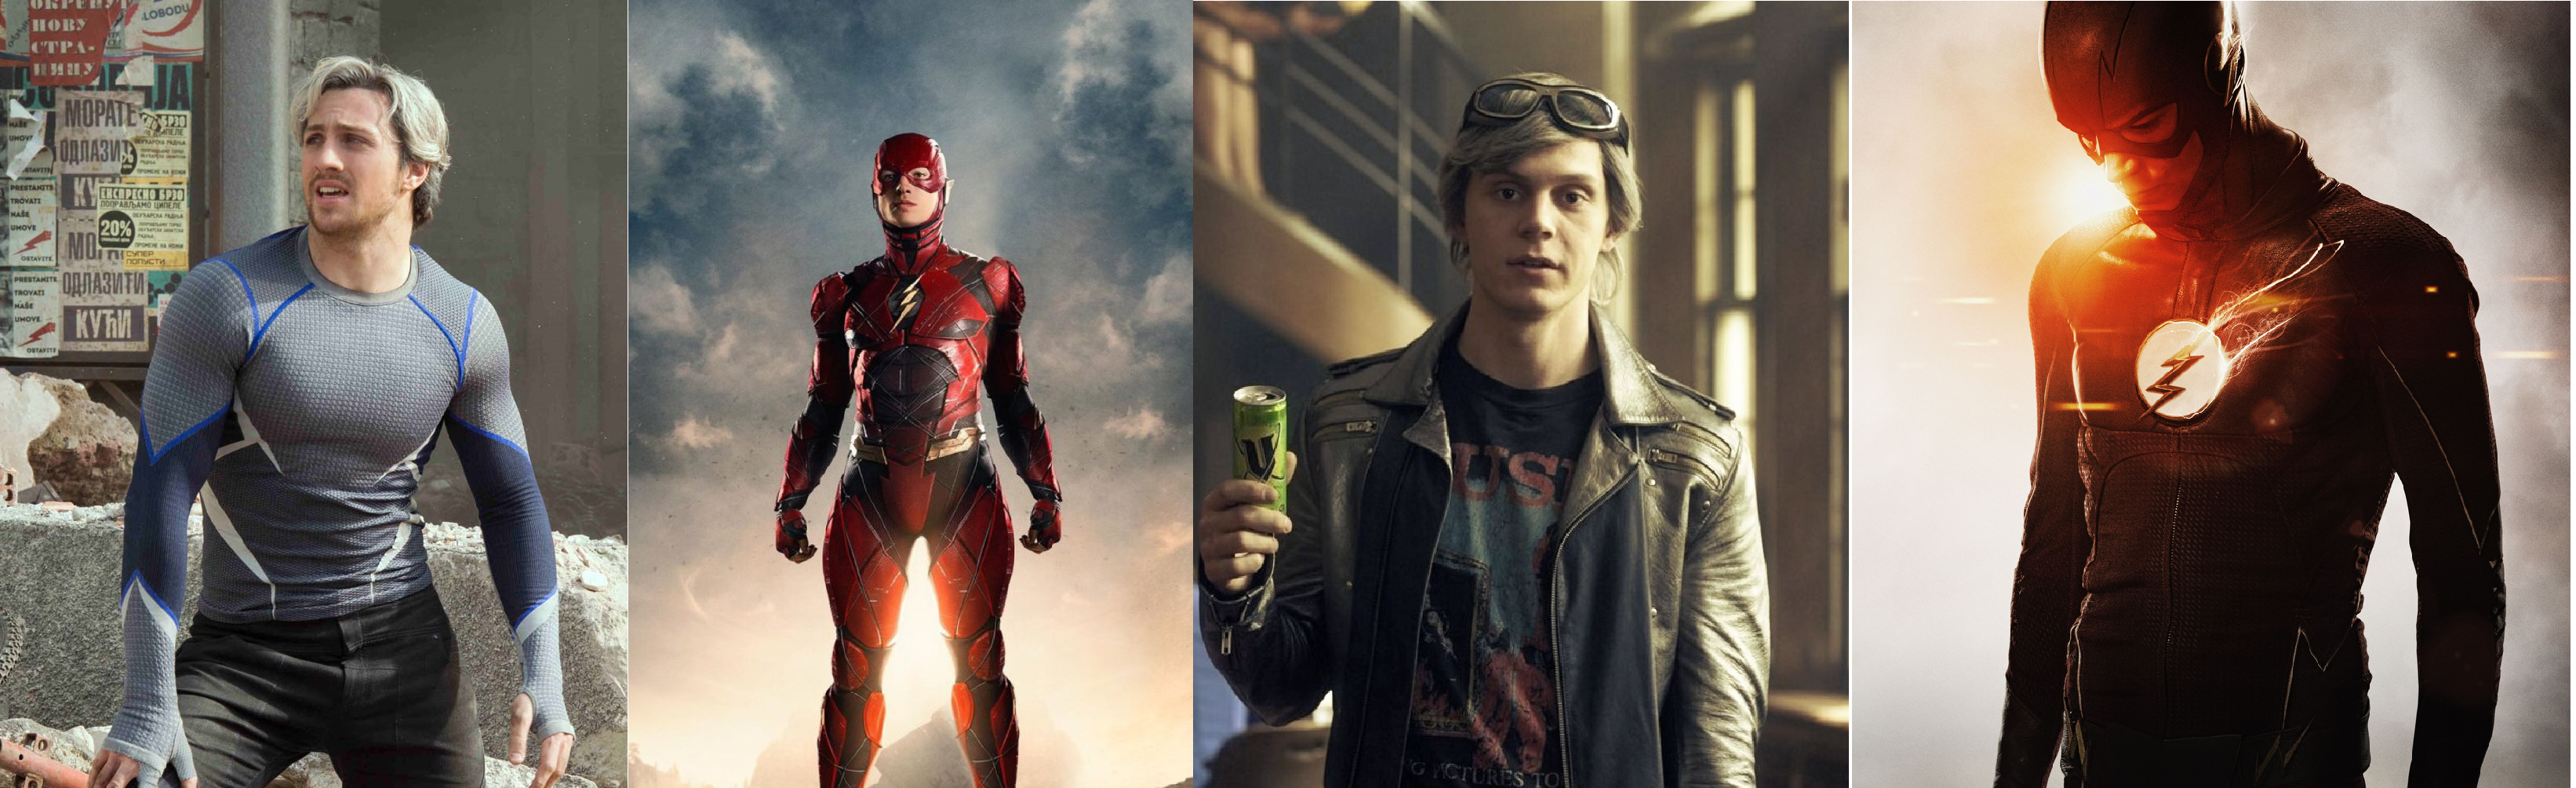 Couverture du premier IRL sur The Flash et Quicksilver